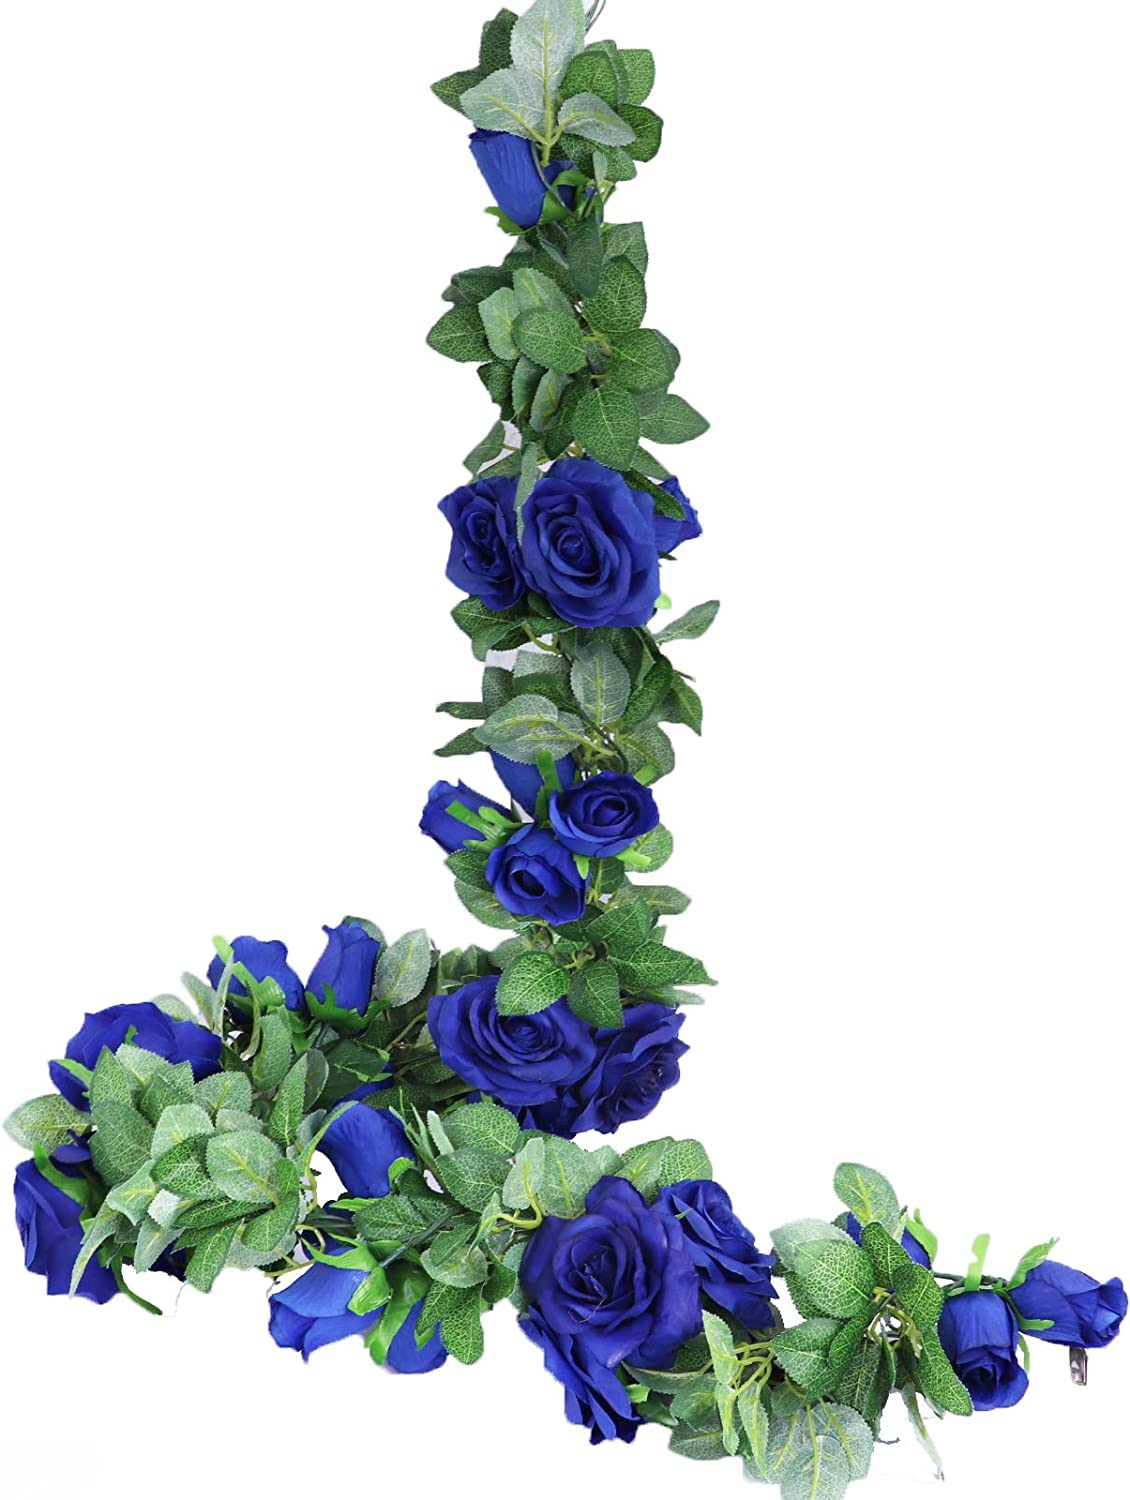 LNHOMY 13 FT Artificial Rose Vine Flowers Fake Rose Garland Flower Silk Hanging Ivy Plants for Home Wedding Party Garden Arch Garden Wall Décor ,2 Pack, (Blue)